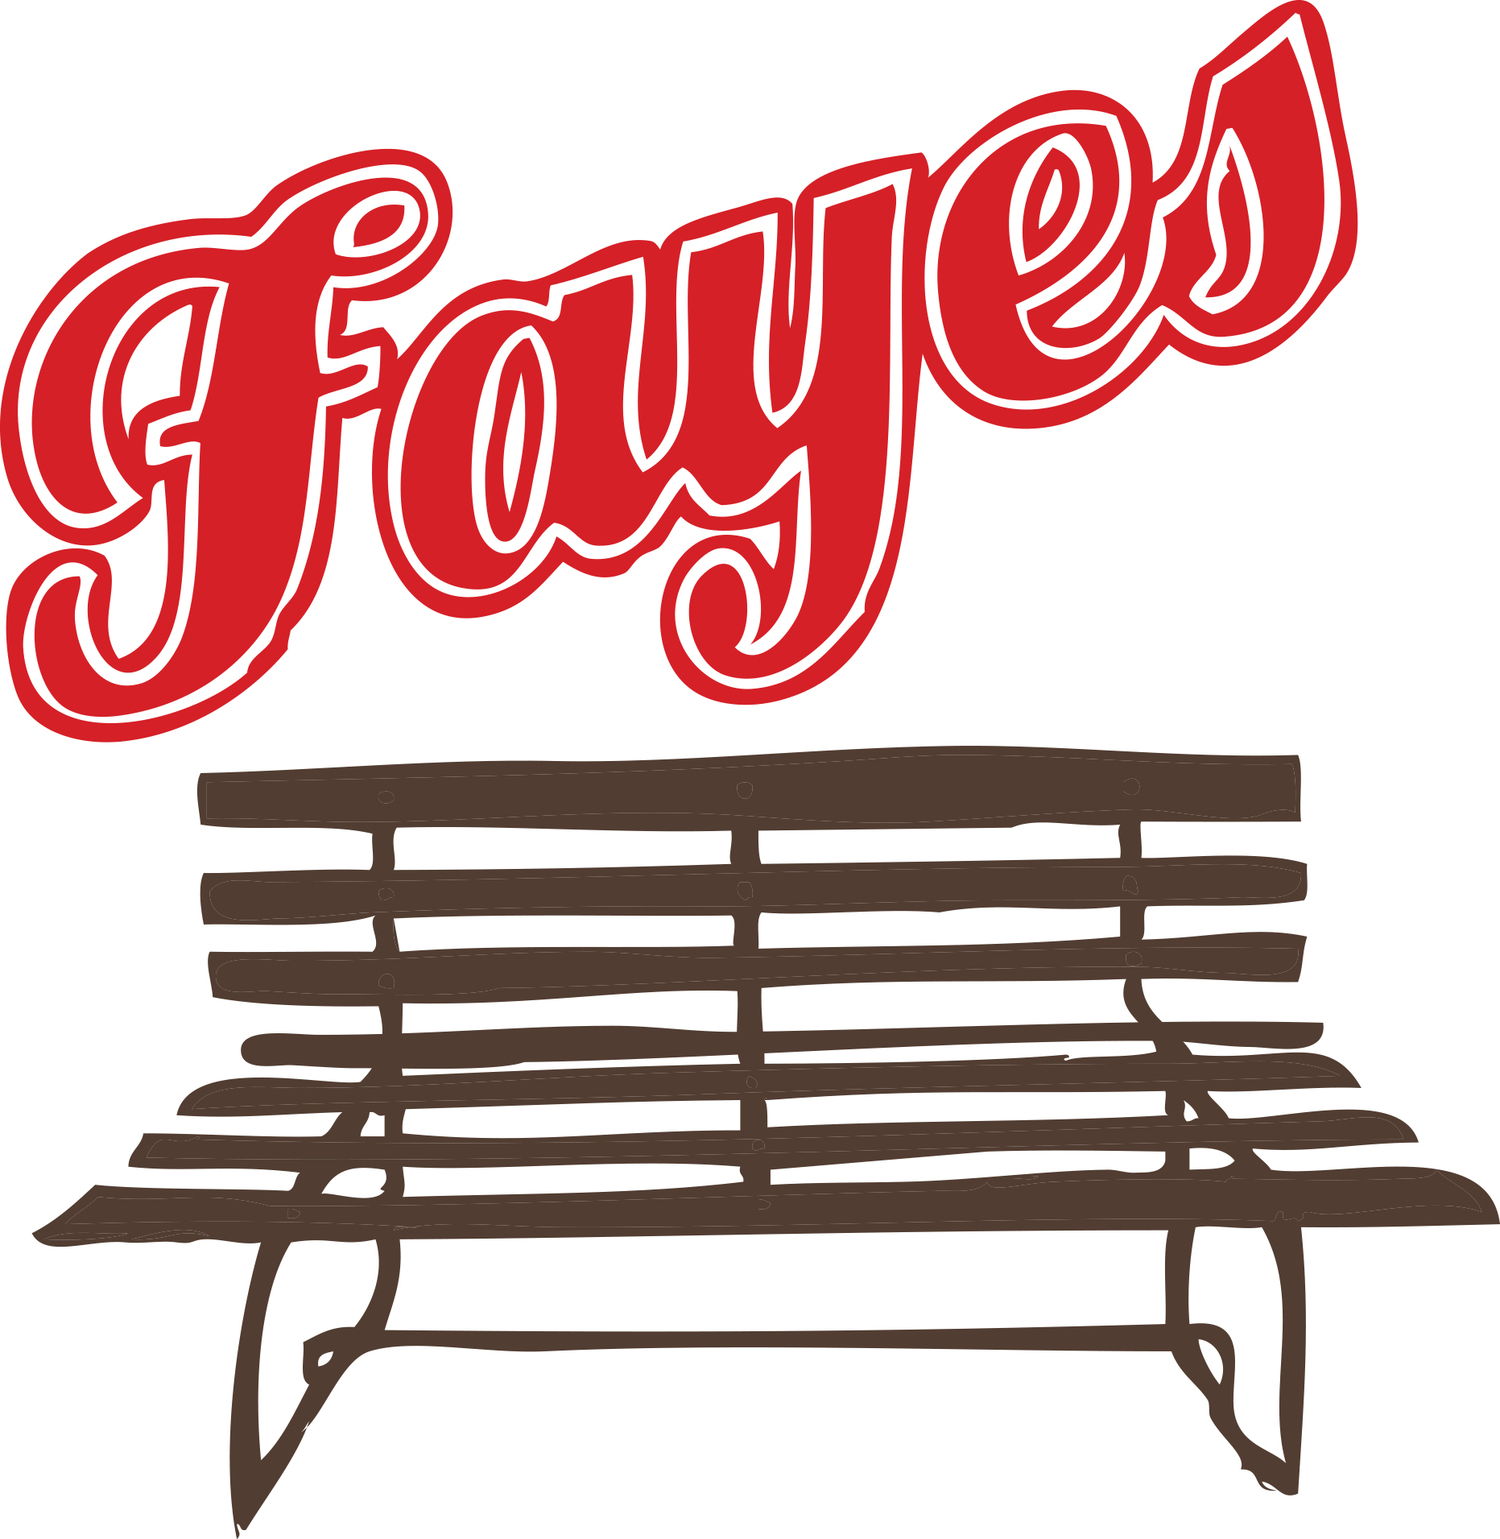 Fayes